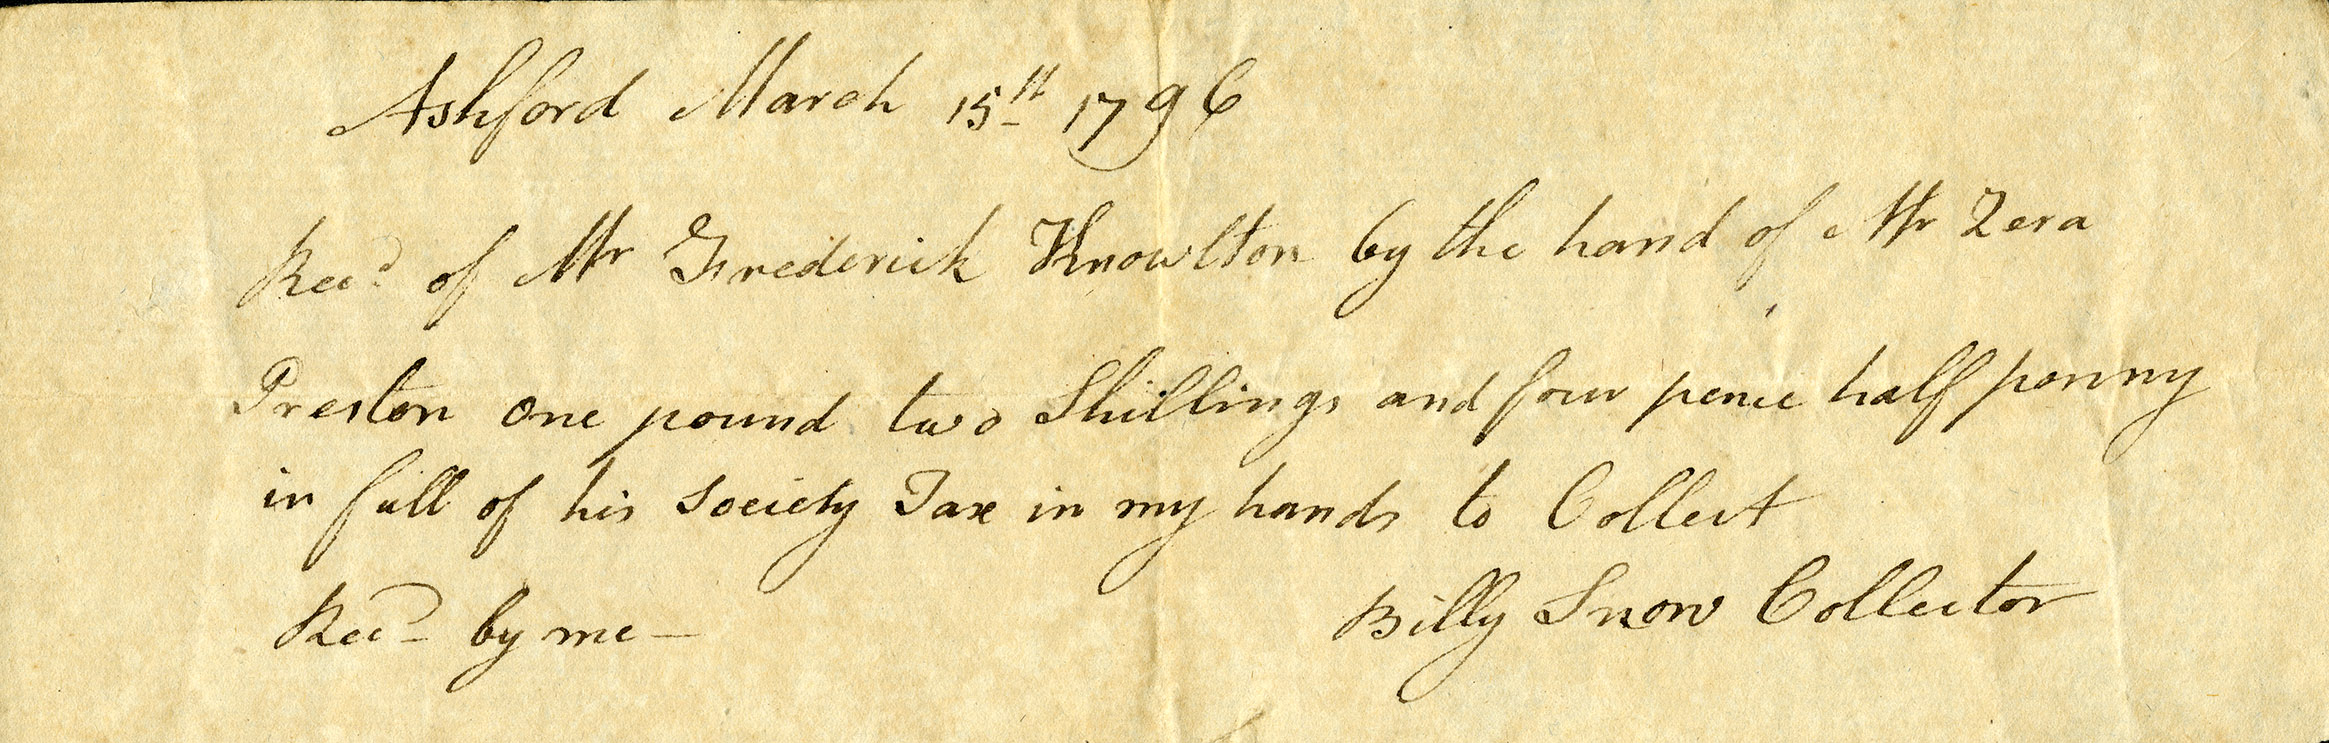 Tax receipt from 1796. From the Fitts Family Papers